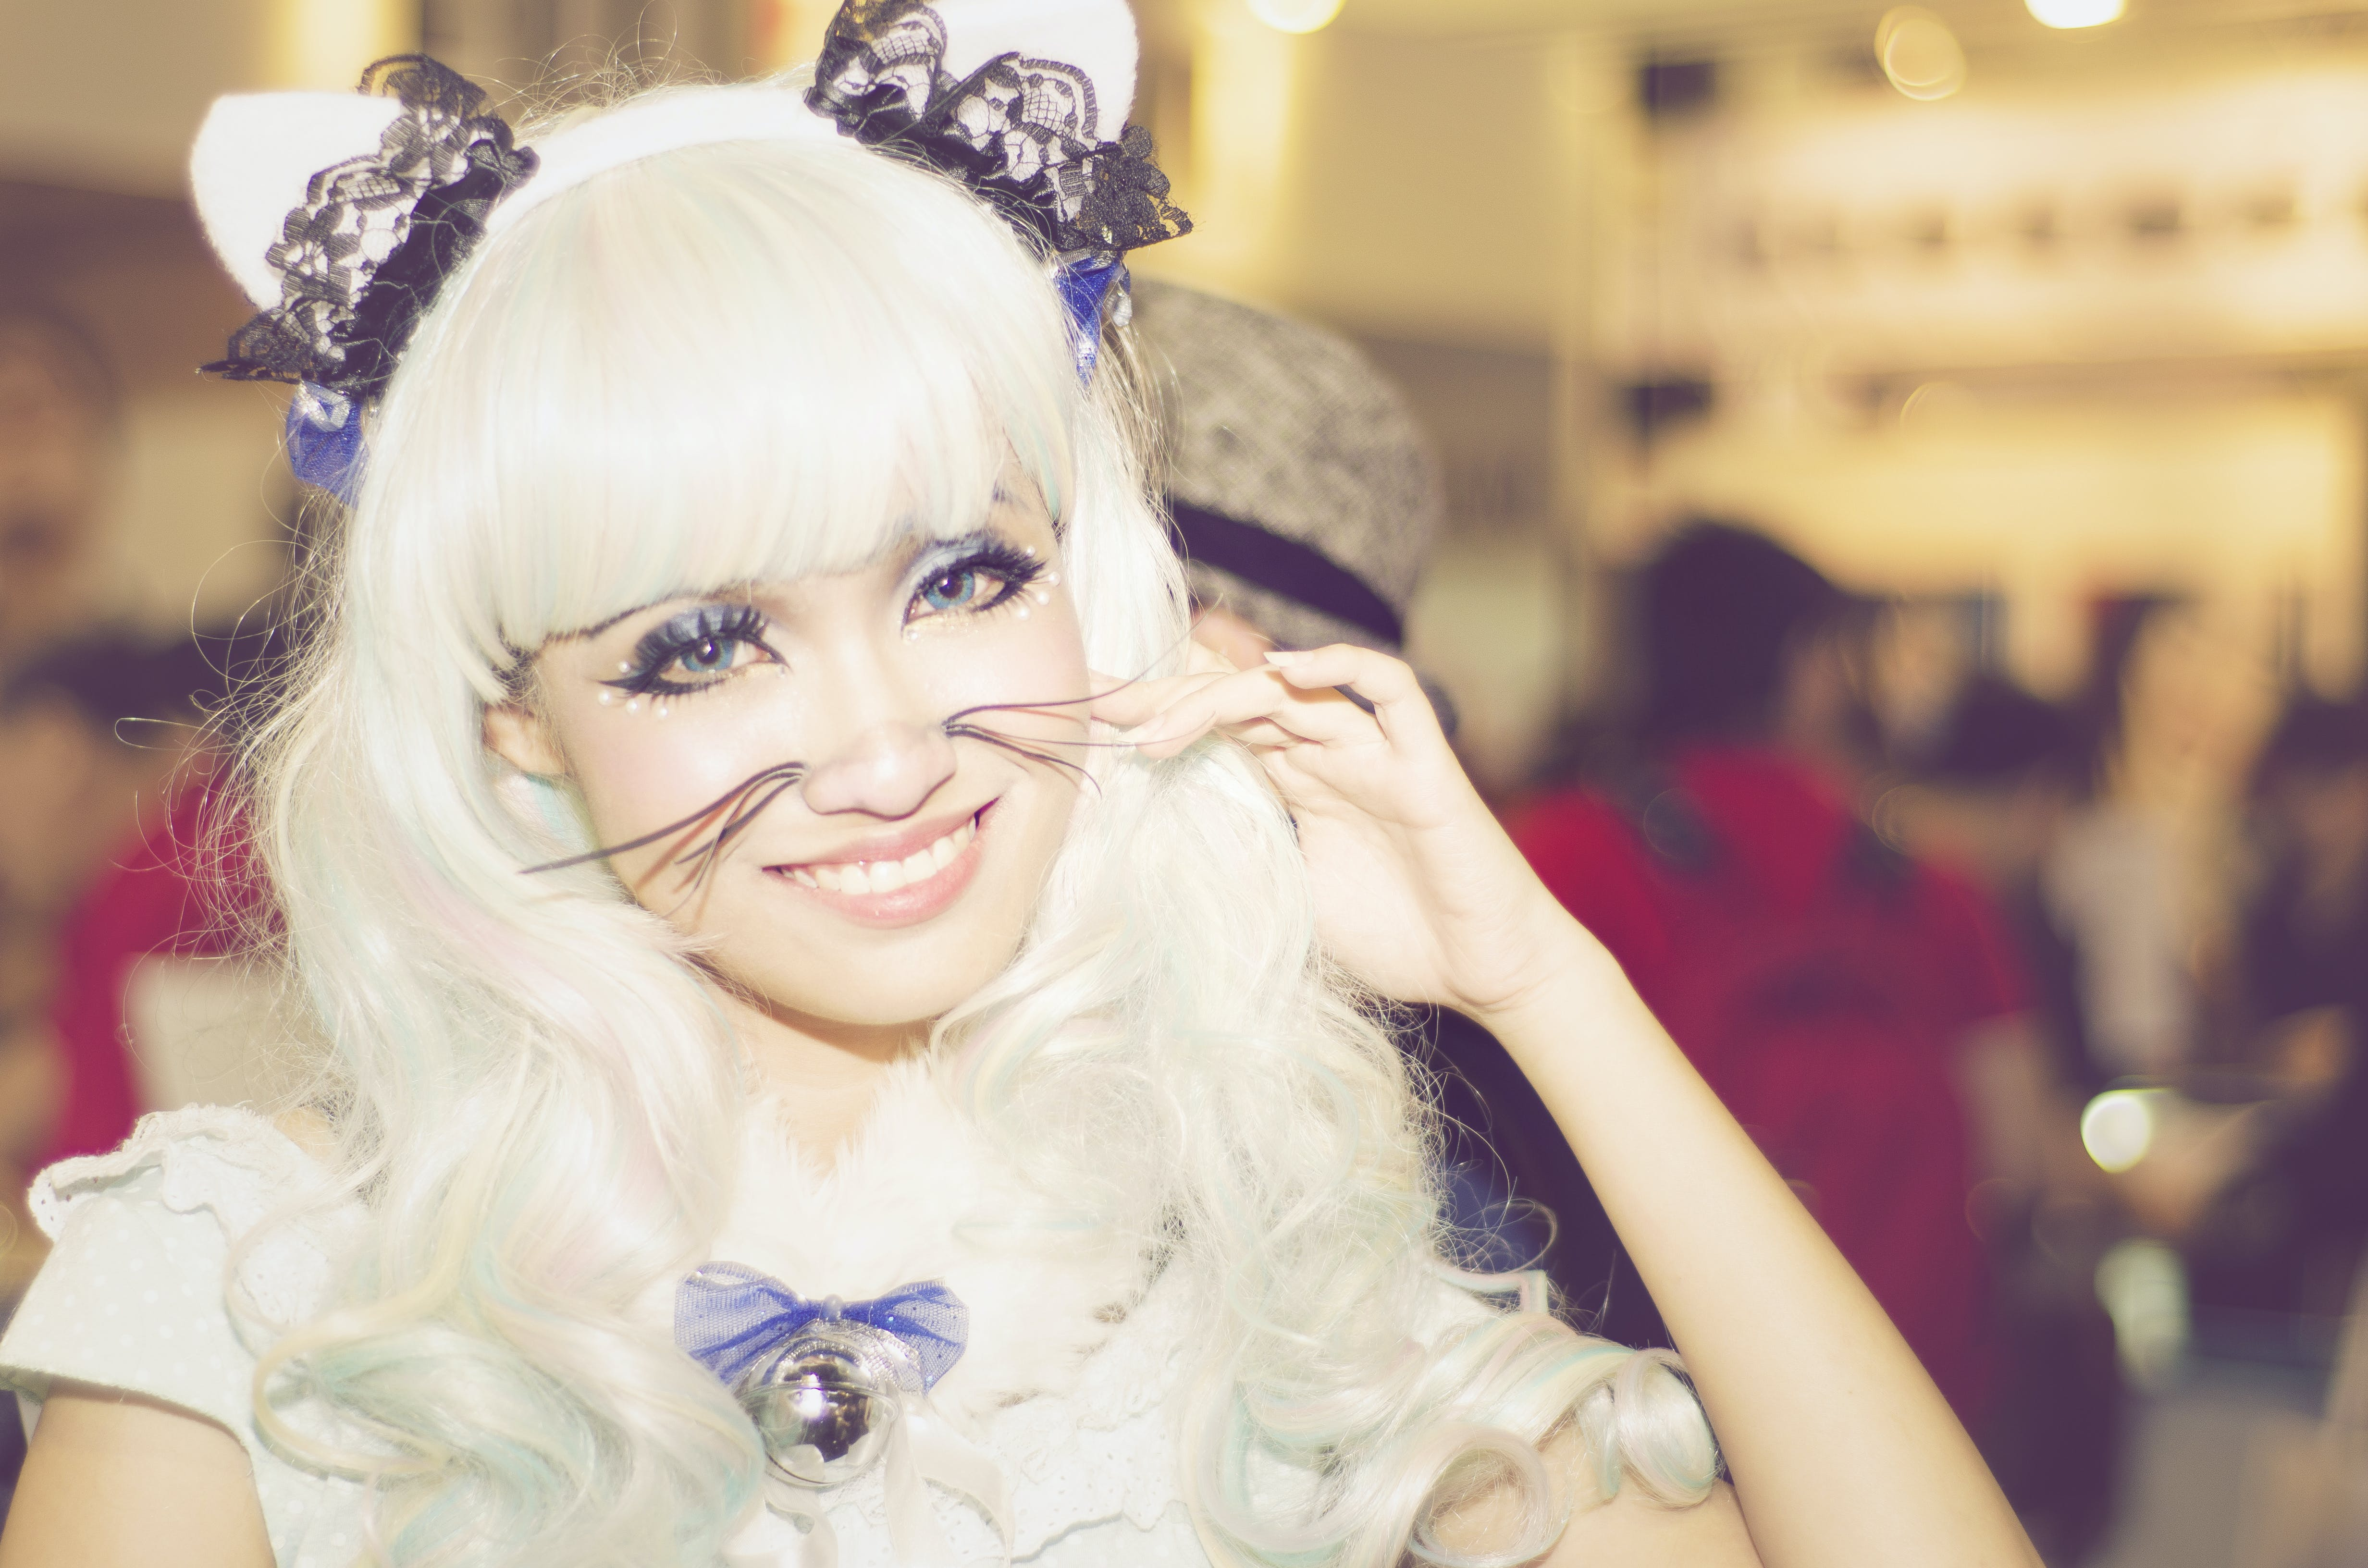 Woman Wearing White Anime Character Costume